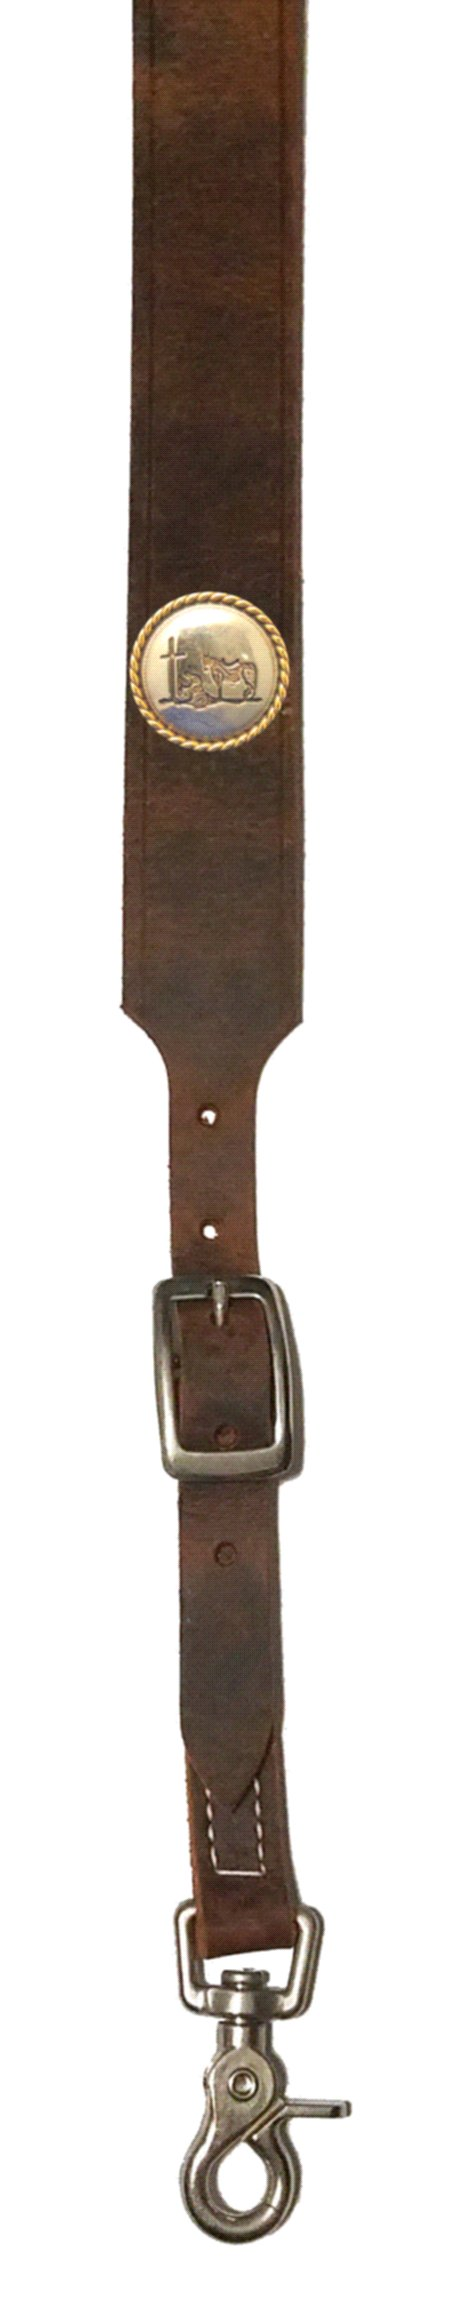 Custom Praying Cowboy Church Leather suspenders in Bay Apache Brown. Made in the USA